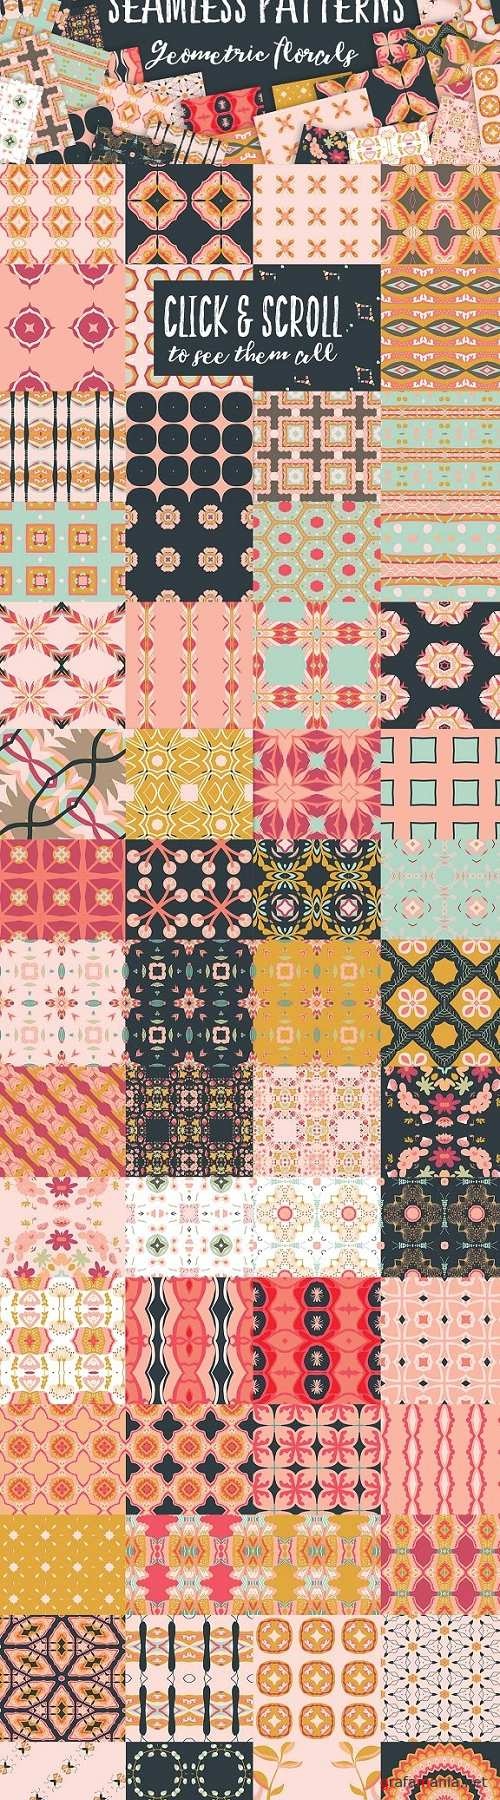 Geometric Florals Seamless Patterns - 842396